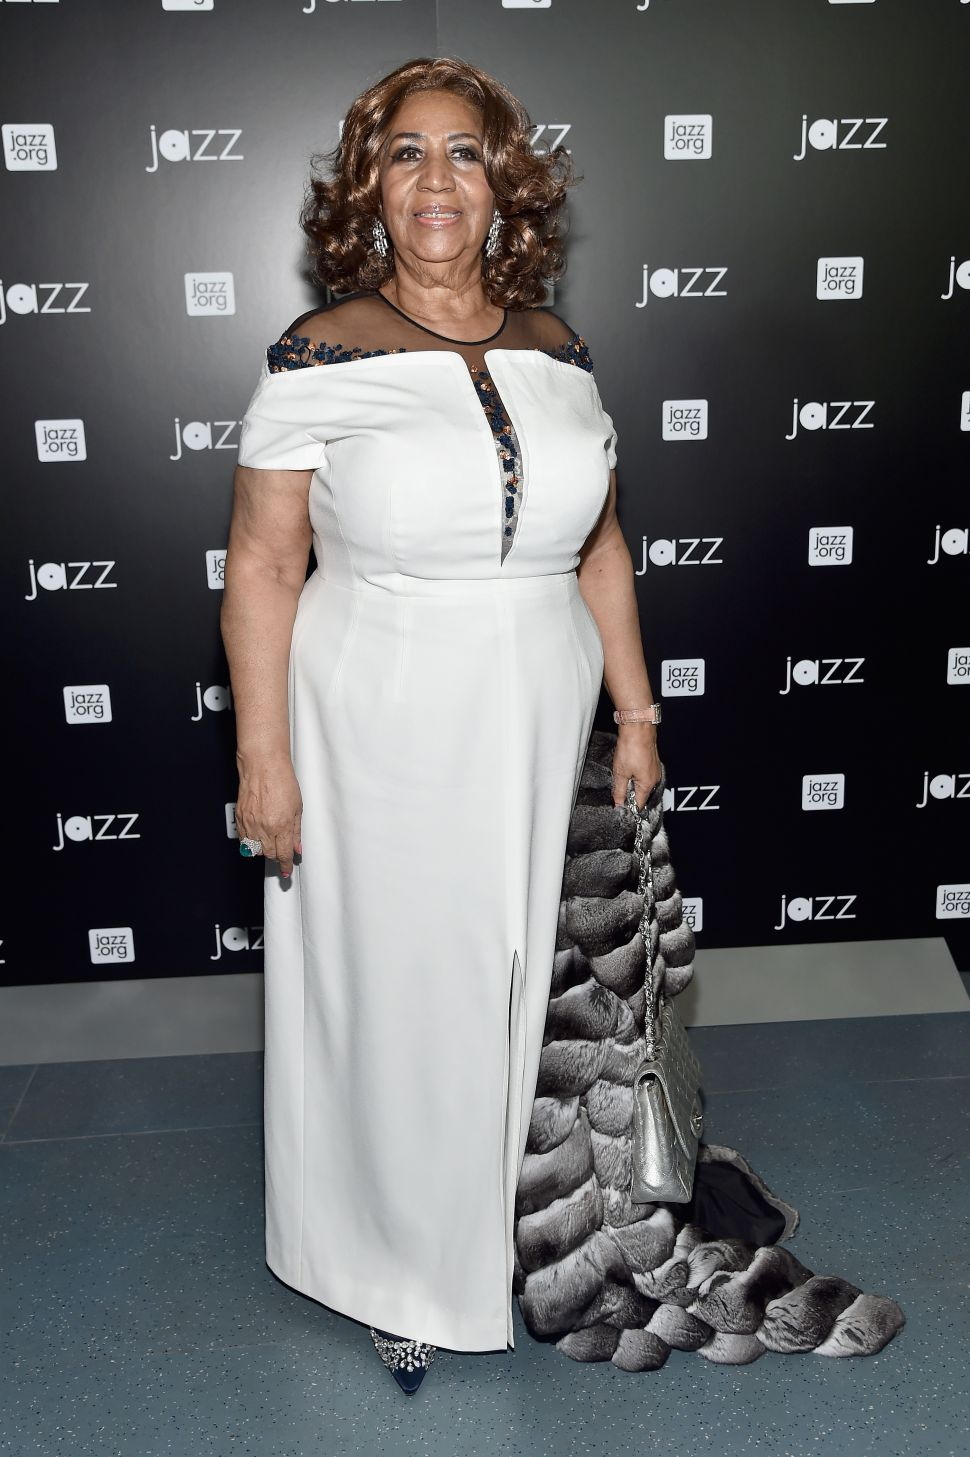 Aretha Franklin (Photo by Mike Coppola/Getty Images for Jazz at Lincoln Center).